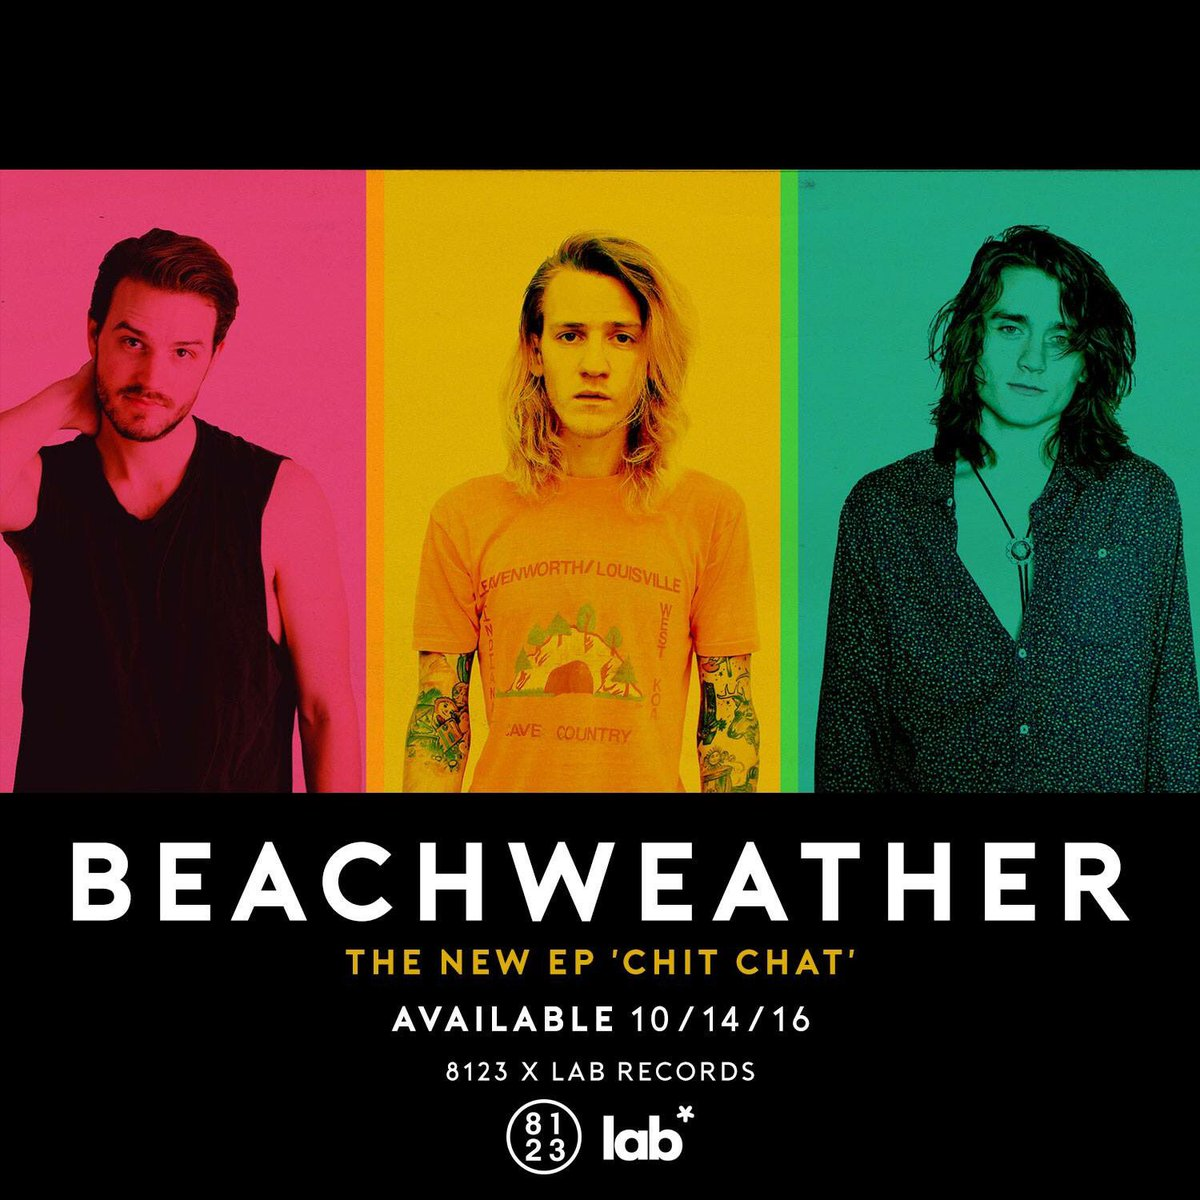 NEW - Delighted to welcome @BeachWeather to LAB! New EP 'Chit Chat' releases via LAB / @8123 in UK on October 14. https://t.co/iGLUoxz0aH